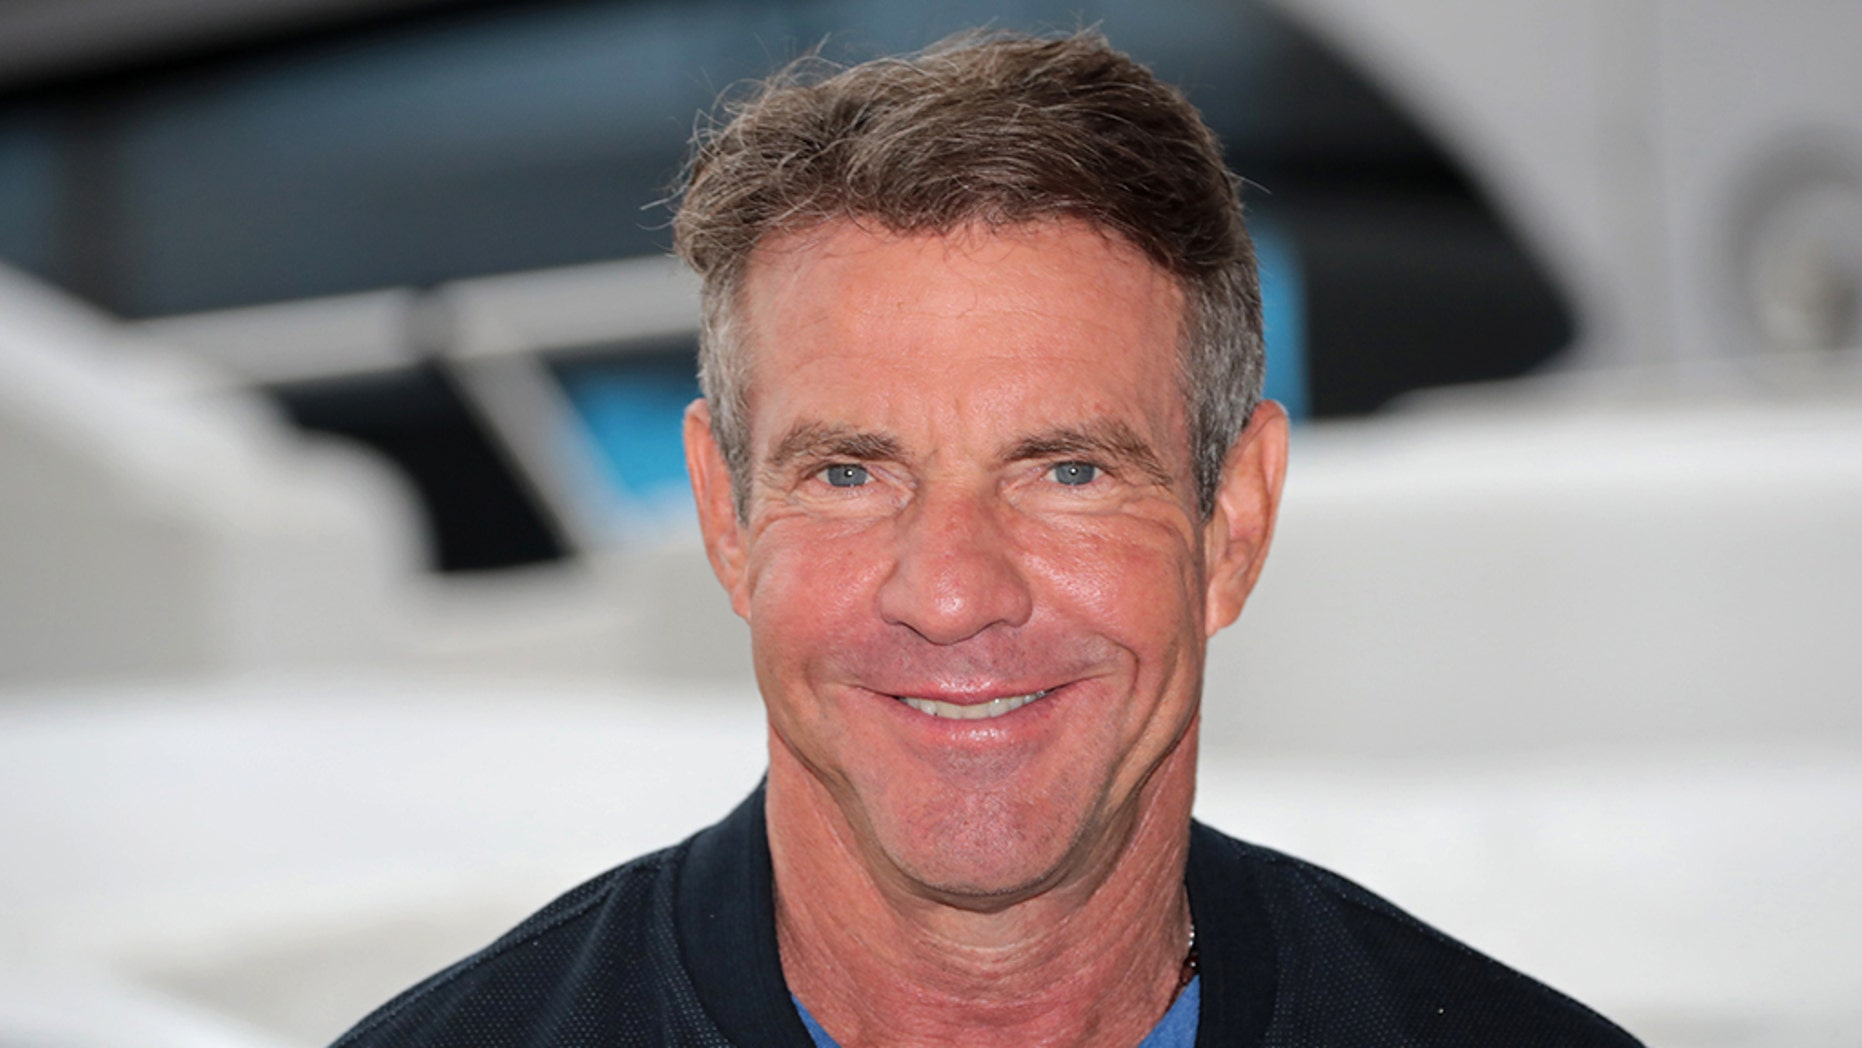 Actor Dennis Quaid revealed that he consumed two grams of cocaine per day.